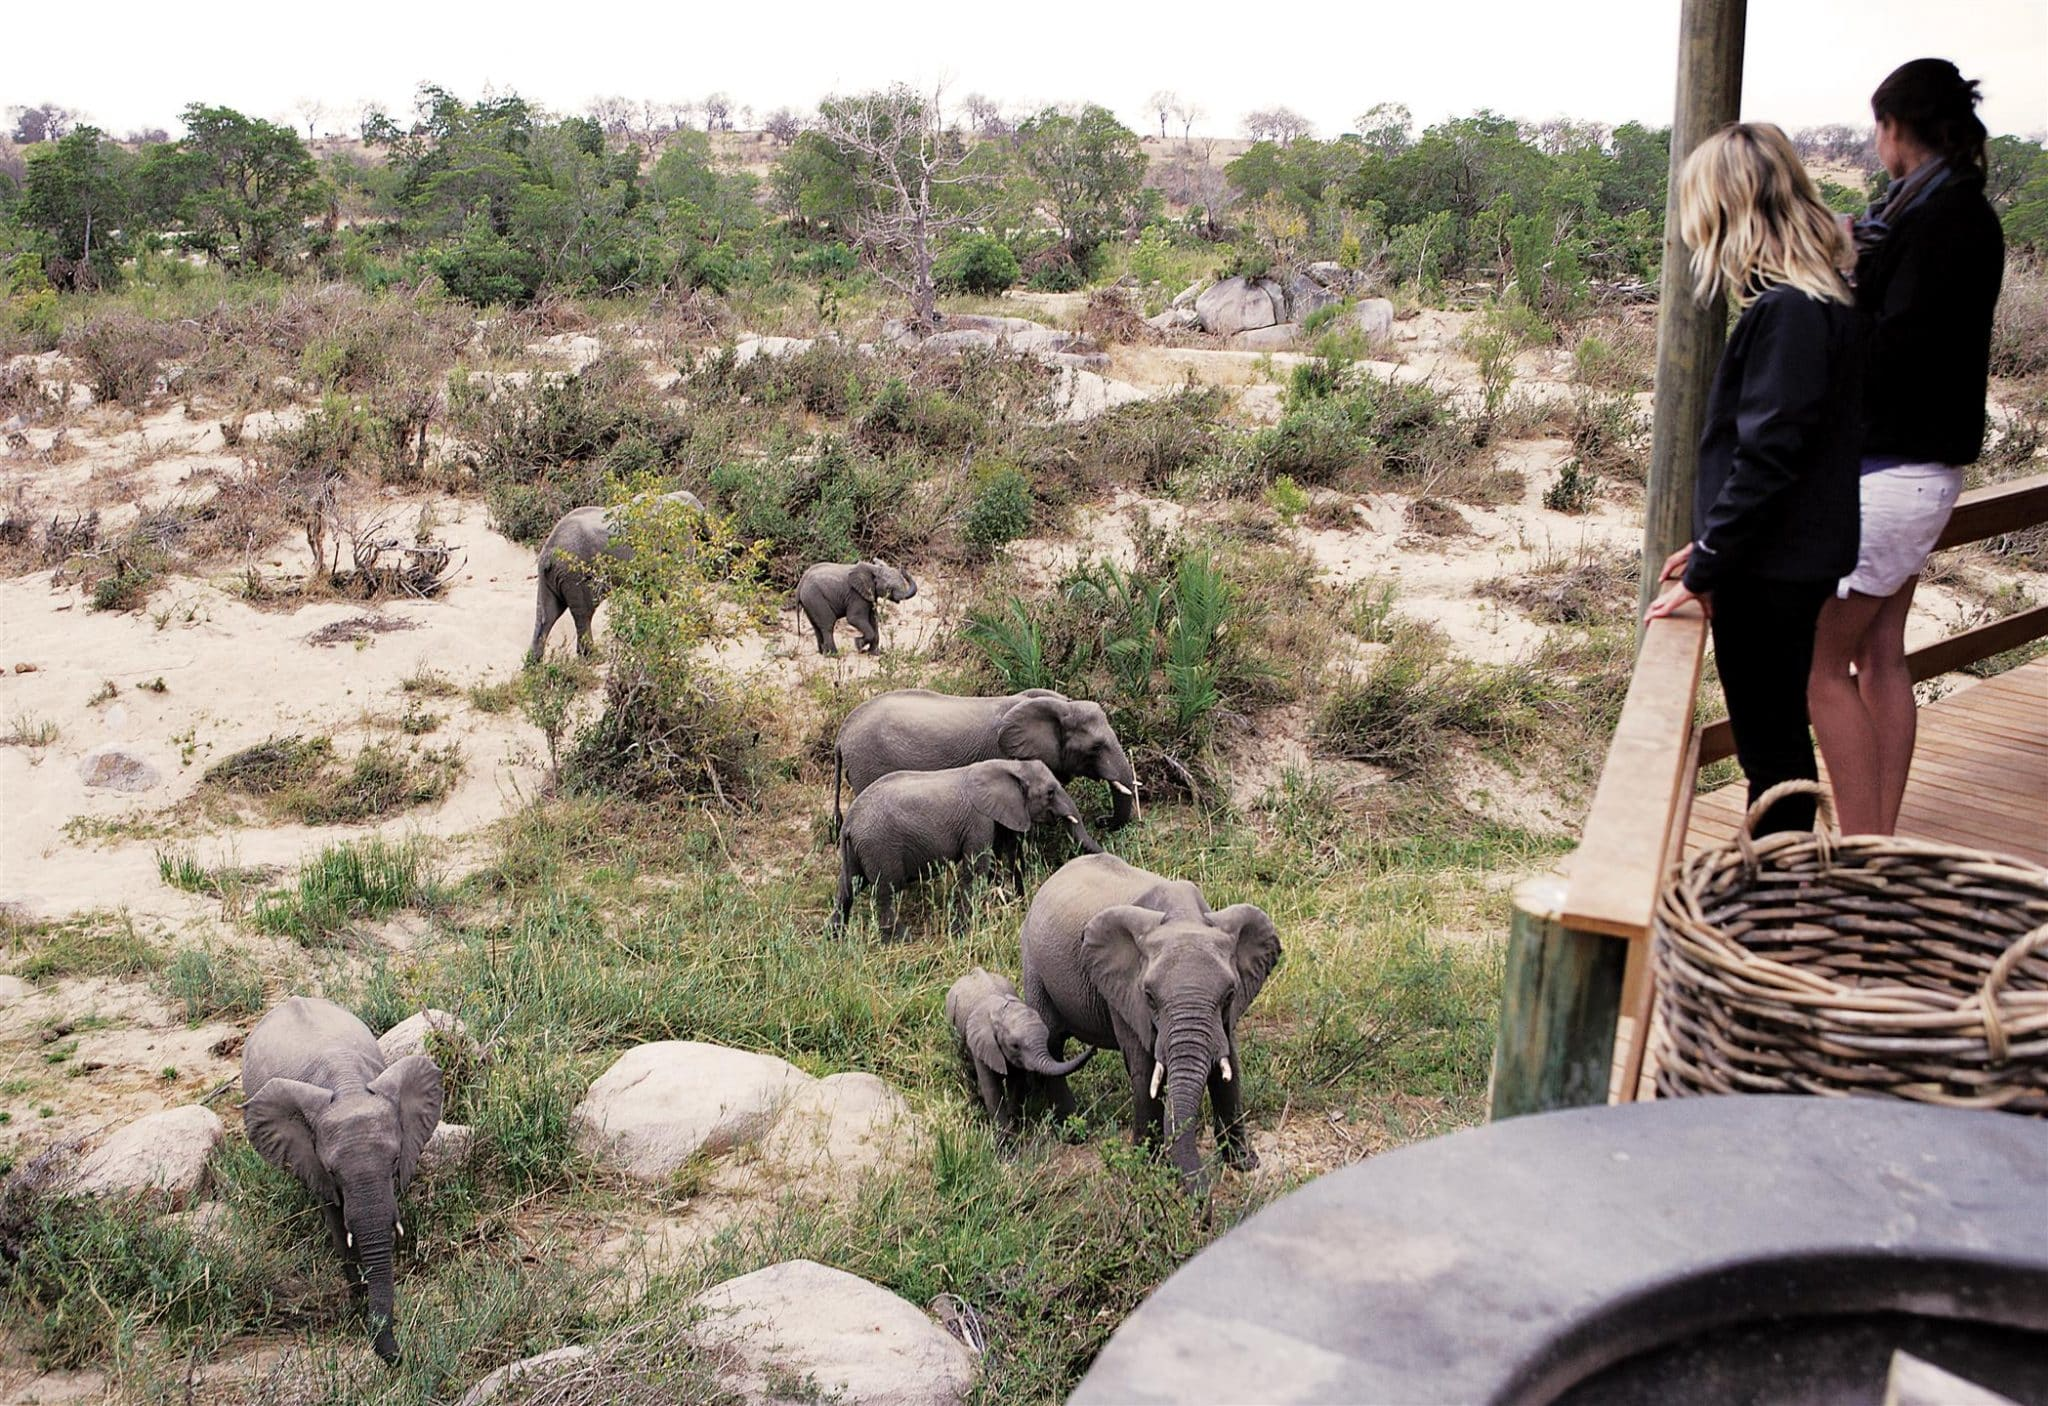 Elephants from the deck at Londolozi Founders Camp